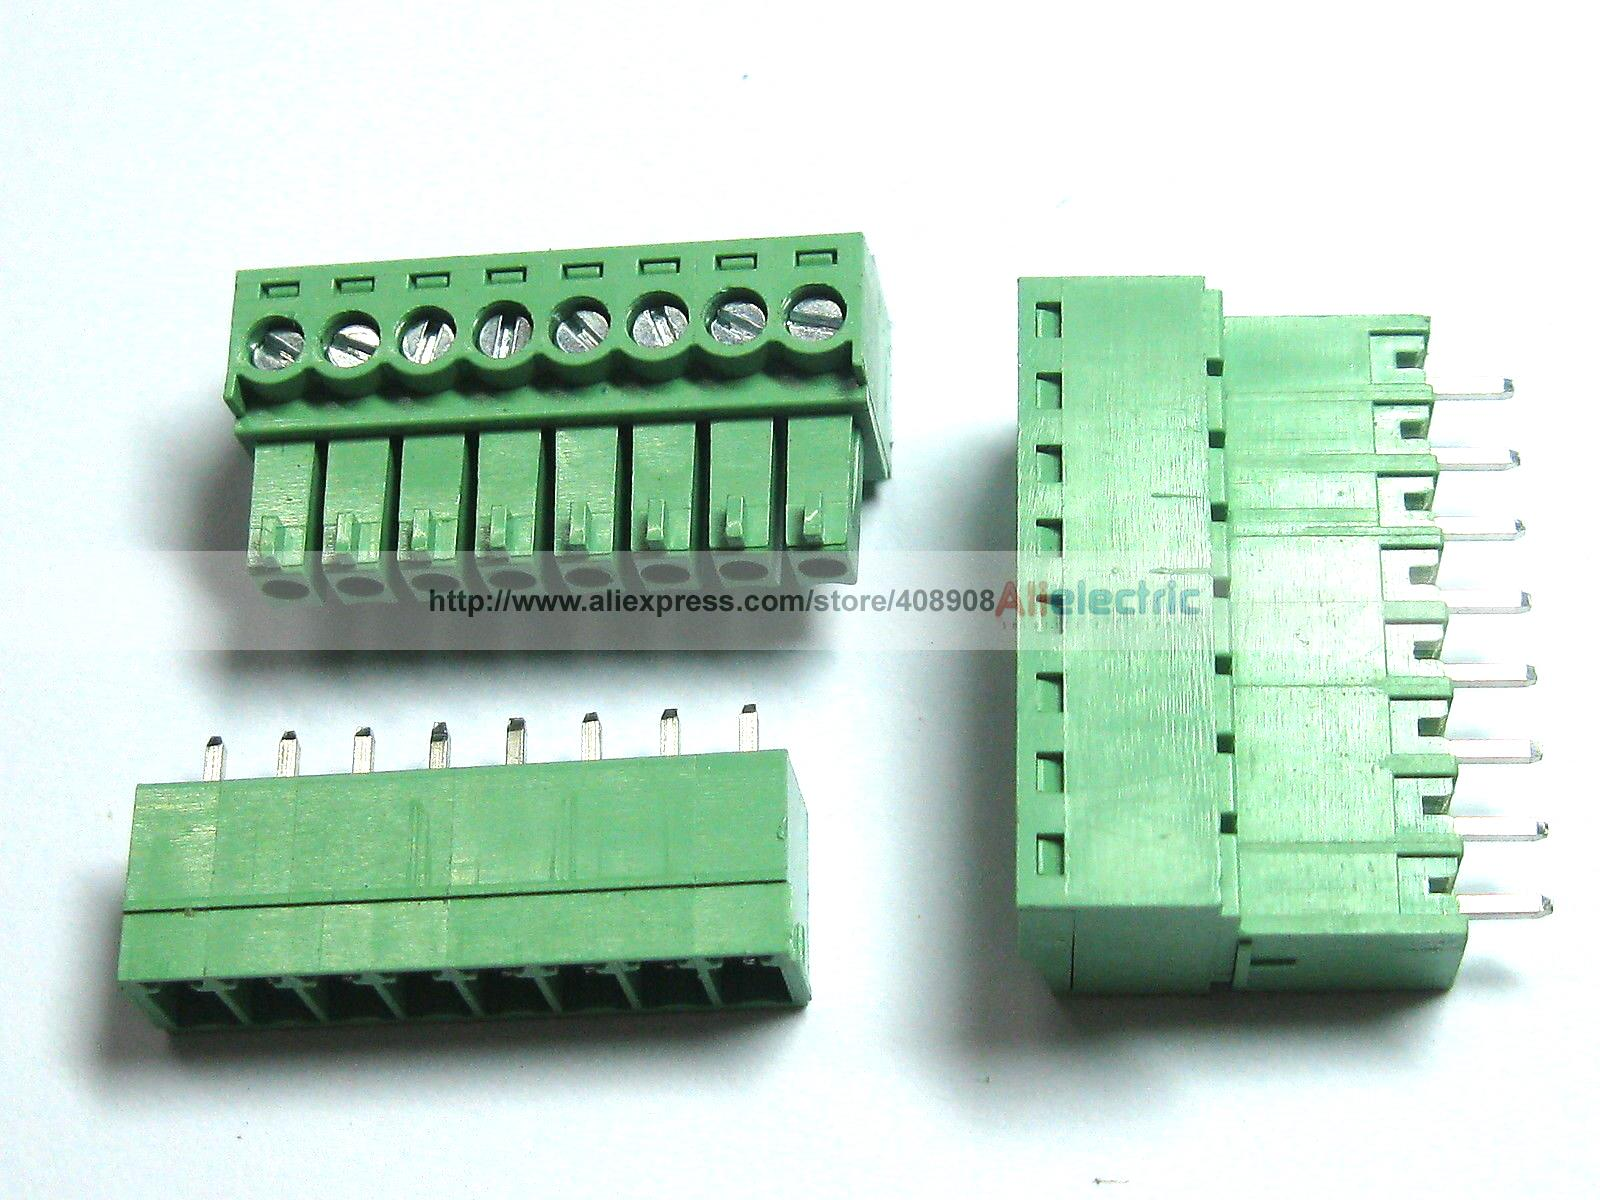 12 Pcs Screw Terminal Block Connector 3.5mm 8 Pin Way Green Pluggable Type цена